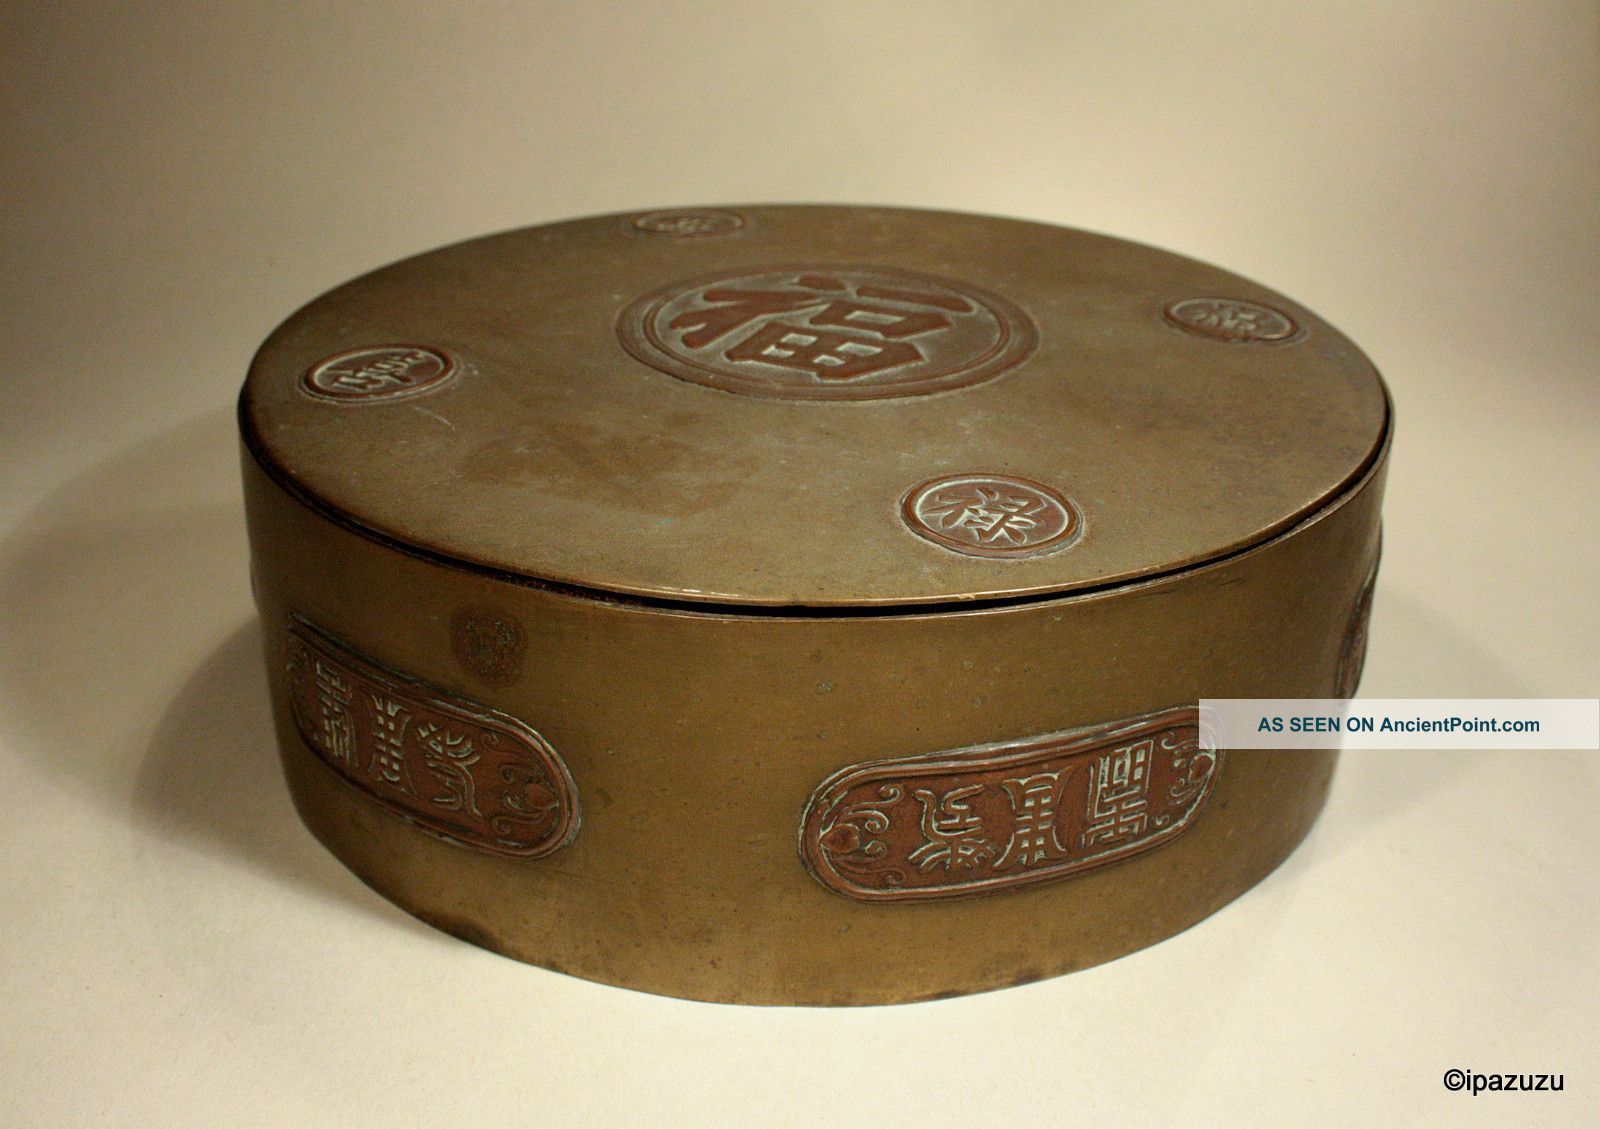 Chinese Antique Bronze Circular Box & Cover 1800s Boxes photo